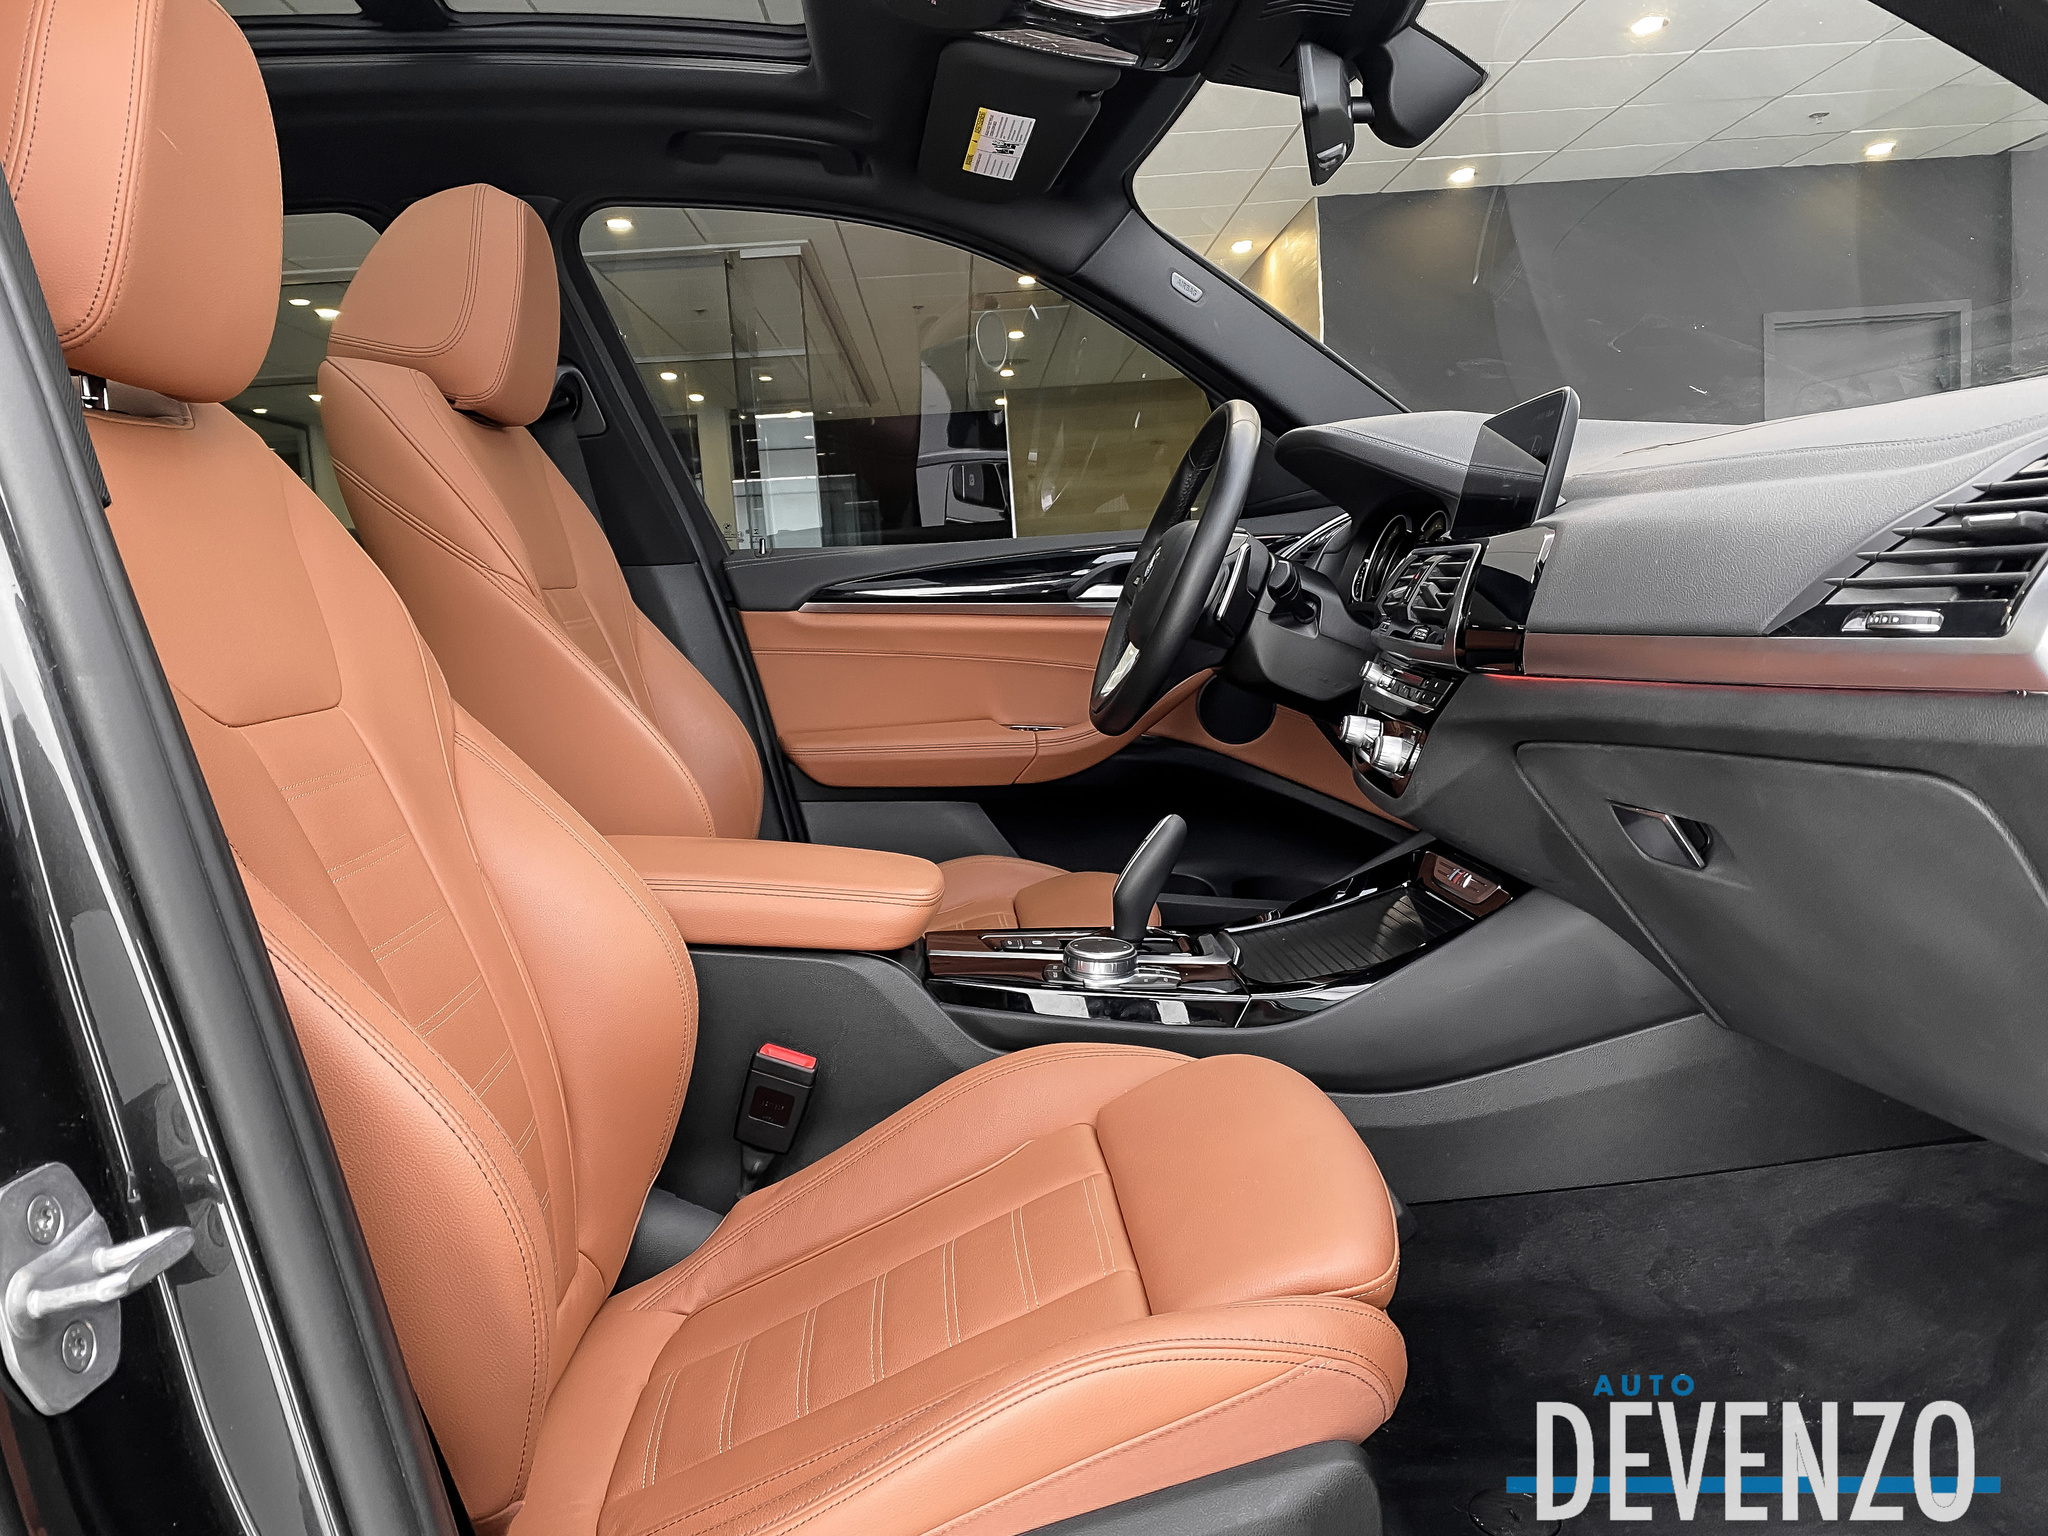 2018 BMW X3 M40i Sports Activity Vehicle 355HP complet